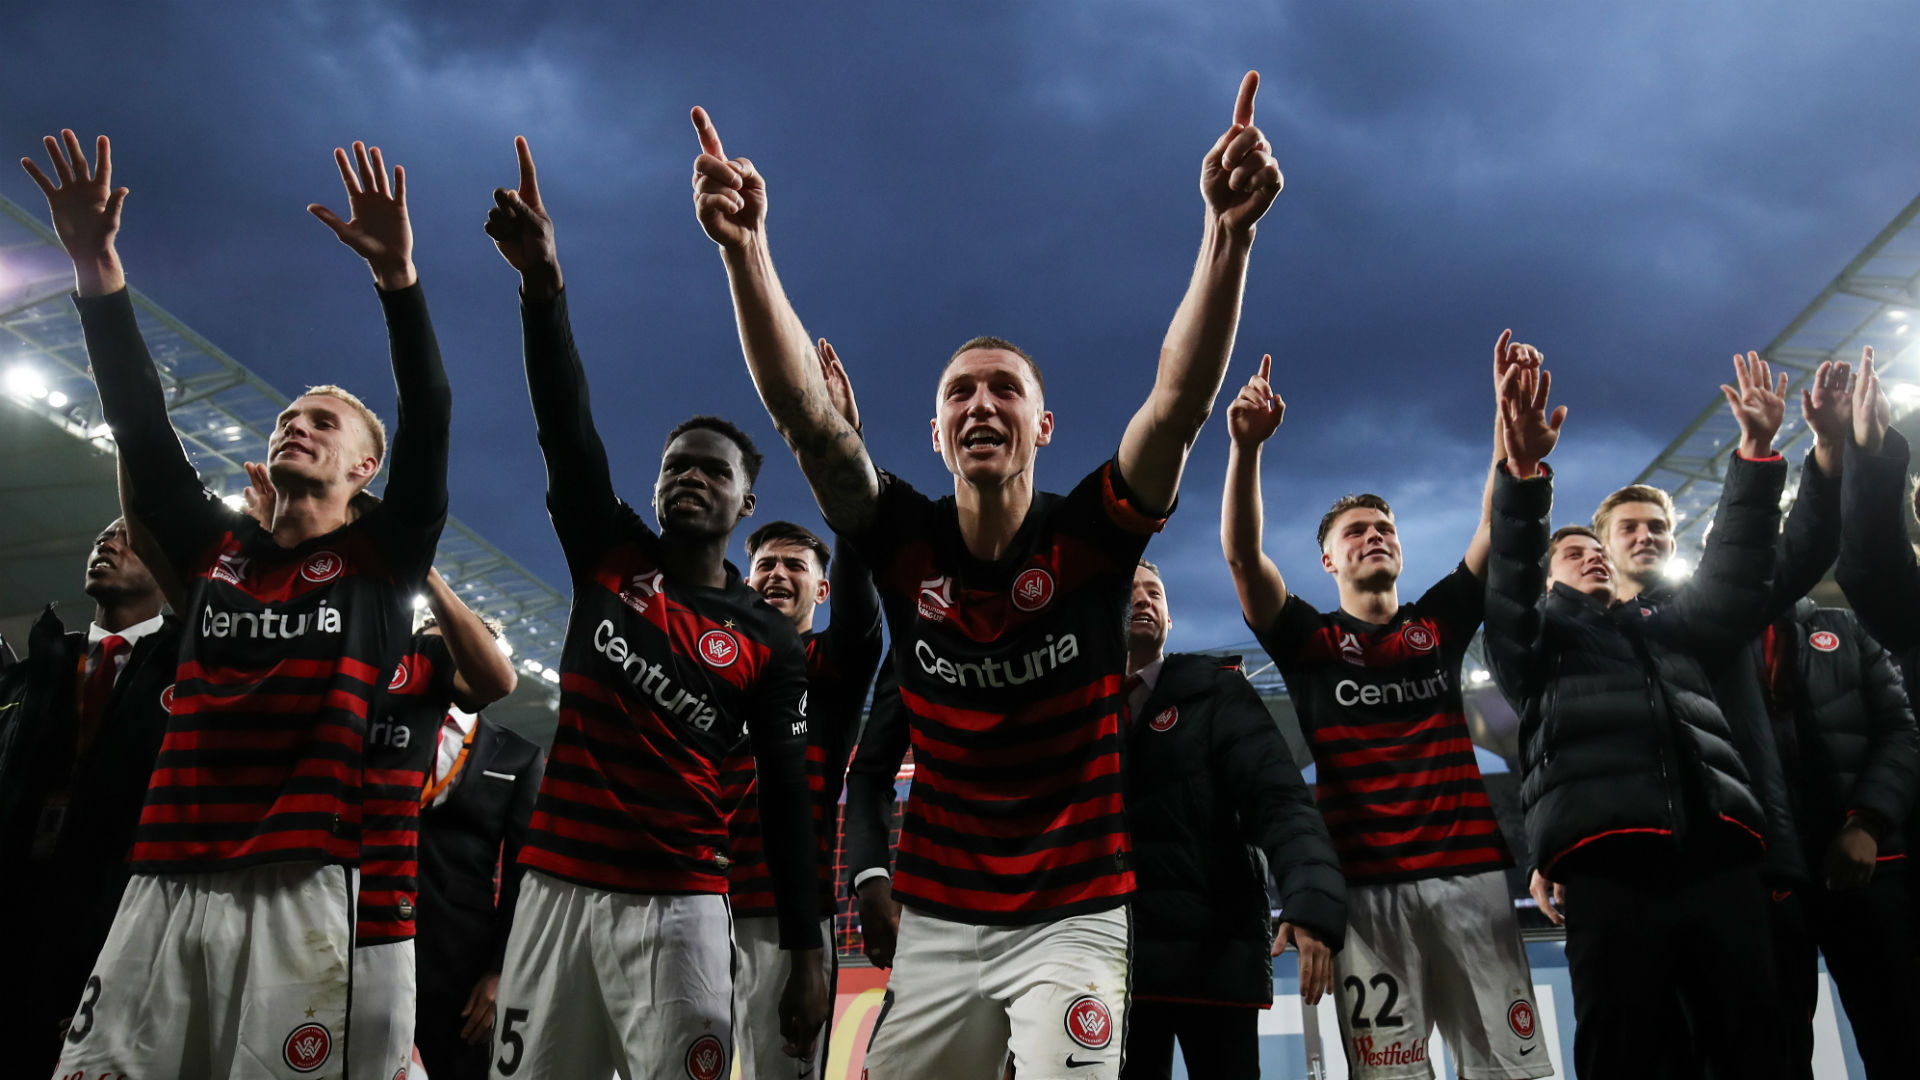 A-League Review: Duke double seals Wanderers win, Melbourne derby ends in stalemate